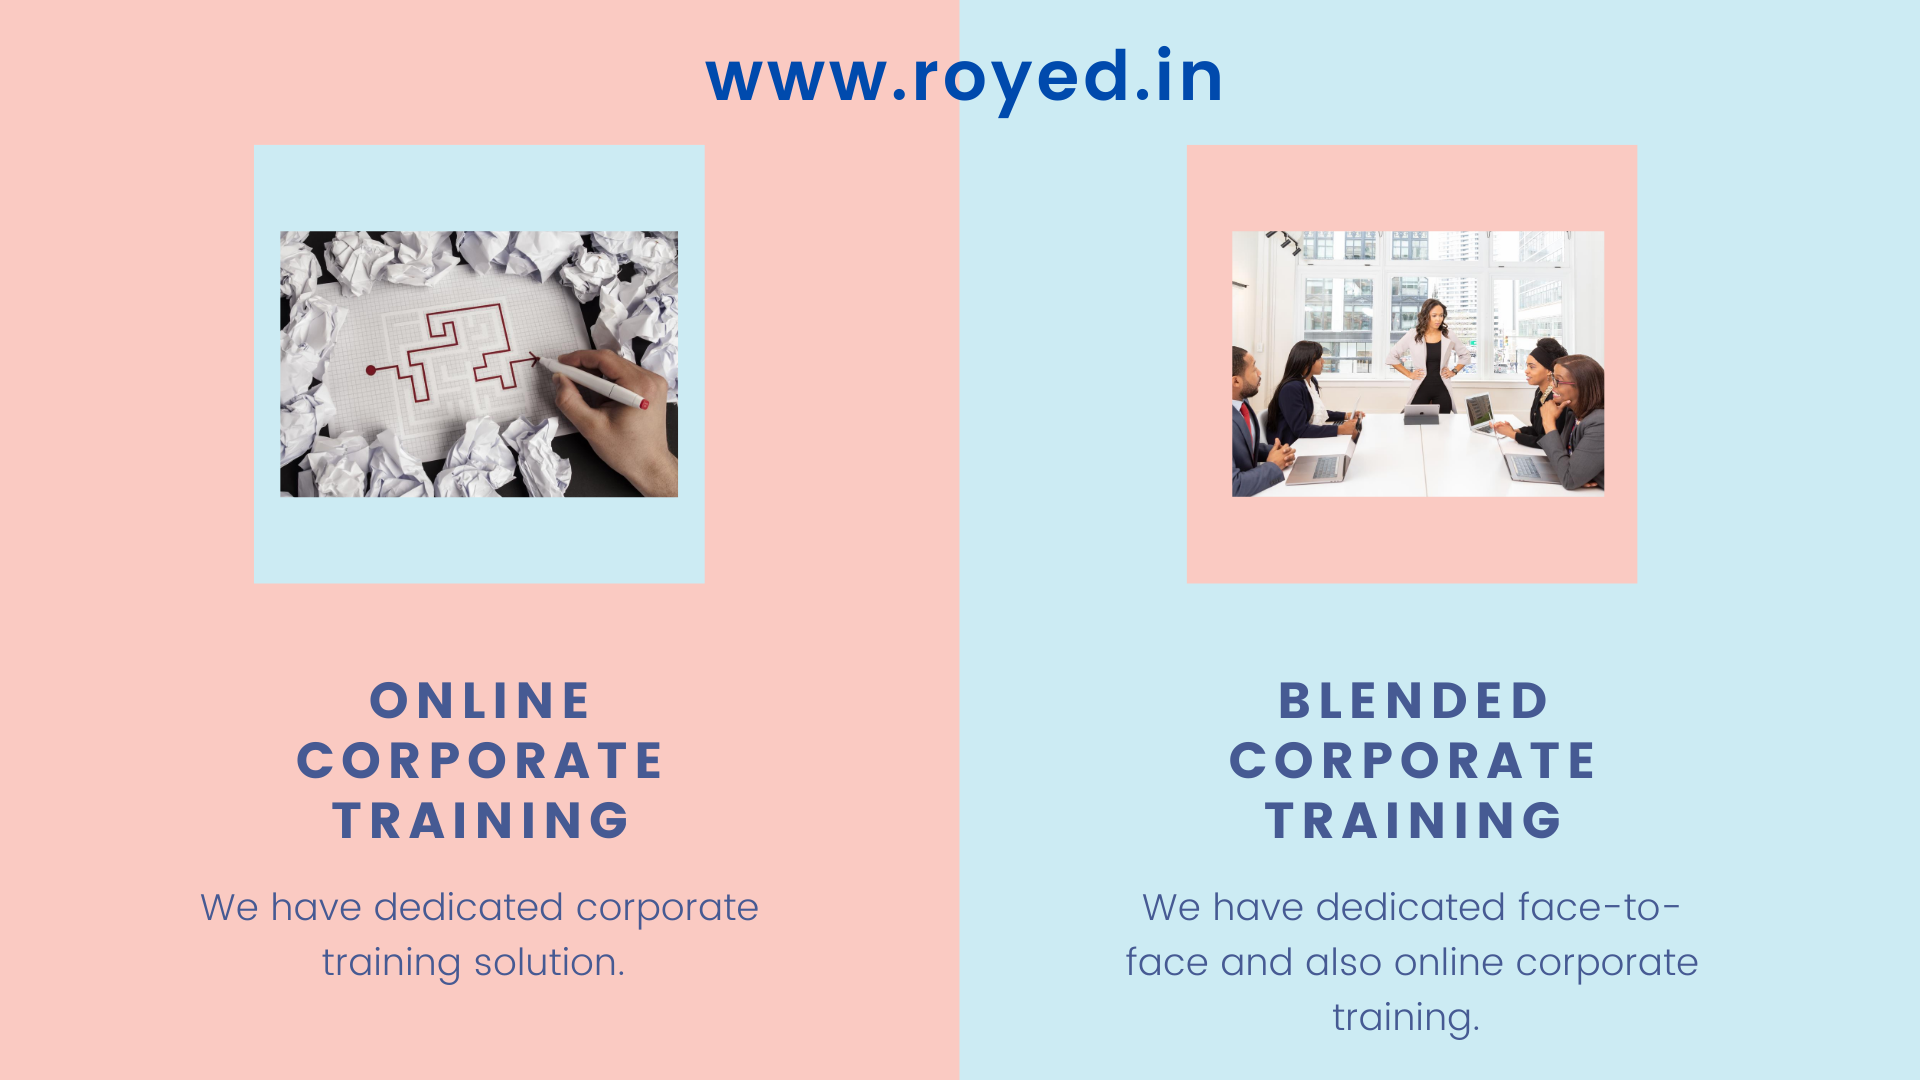 Royed Training corporate and blended learning